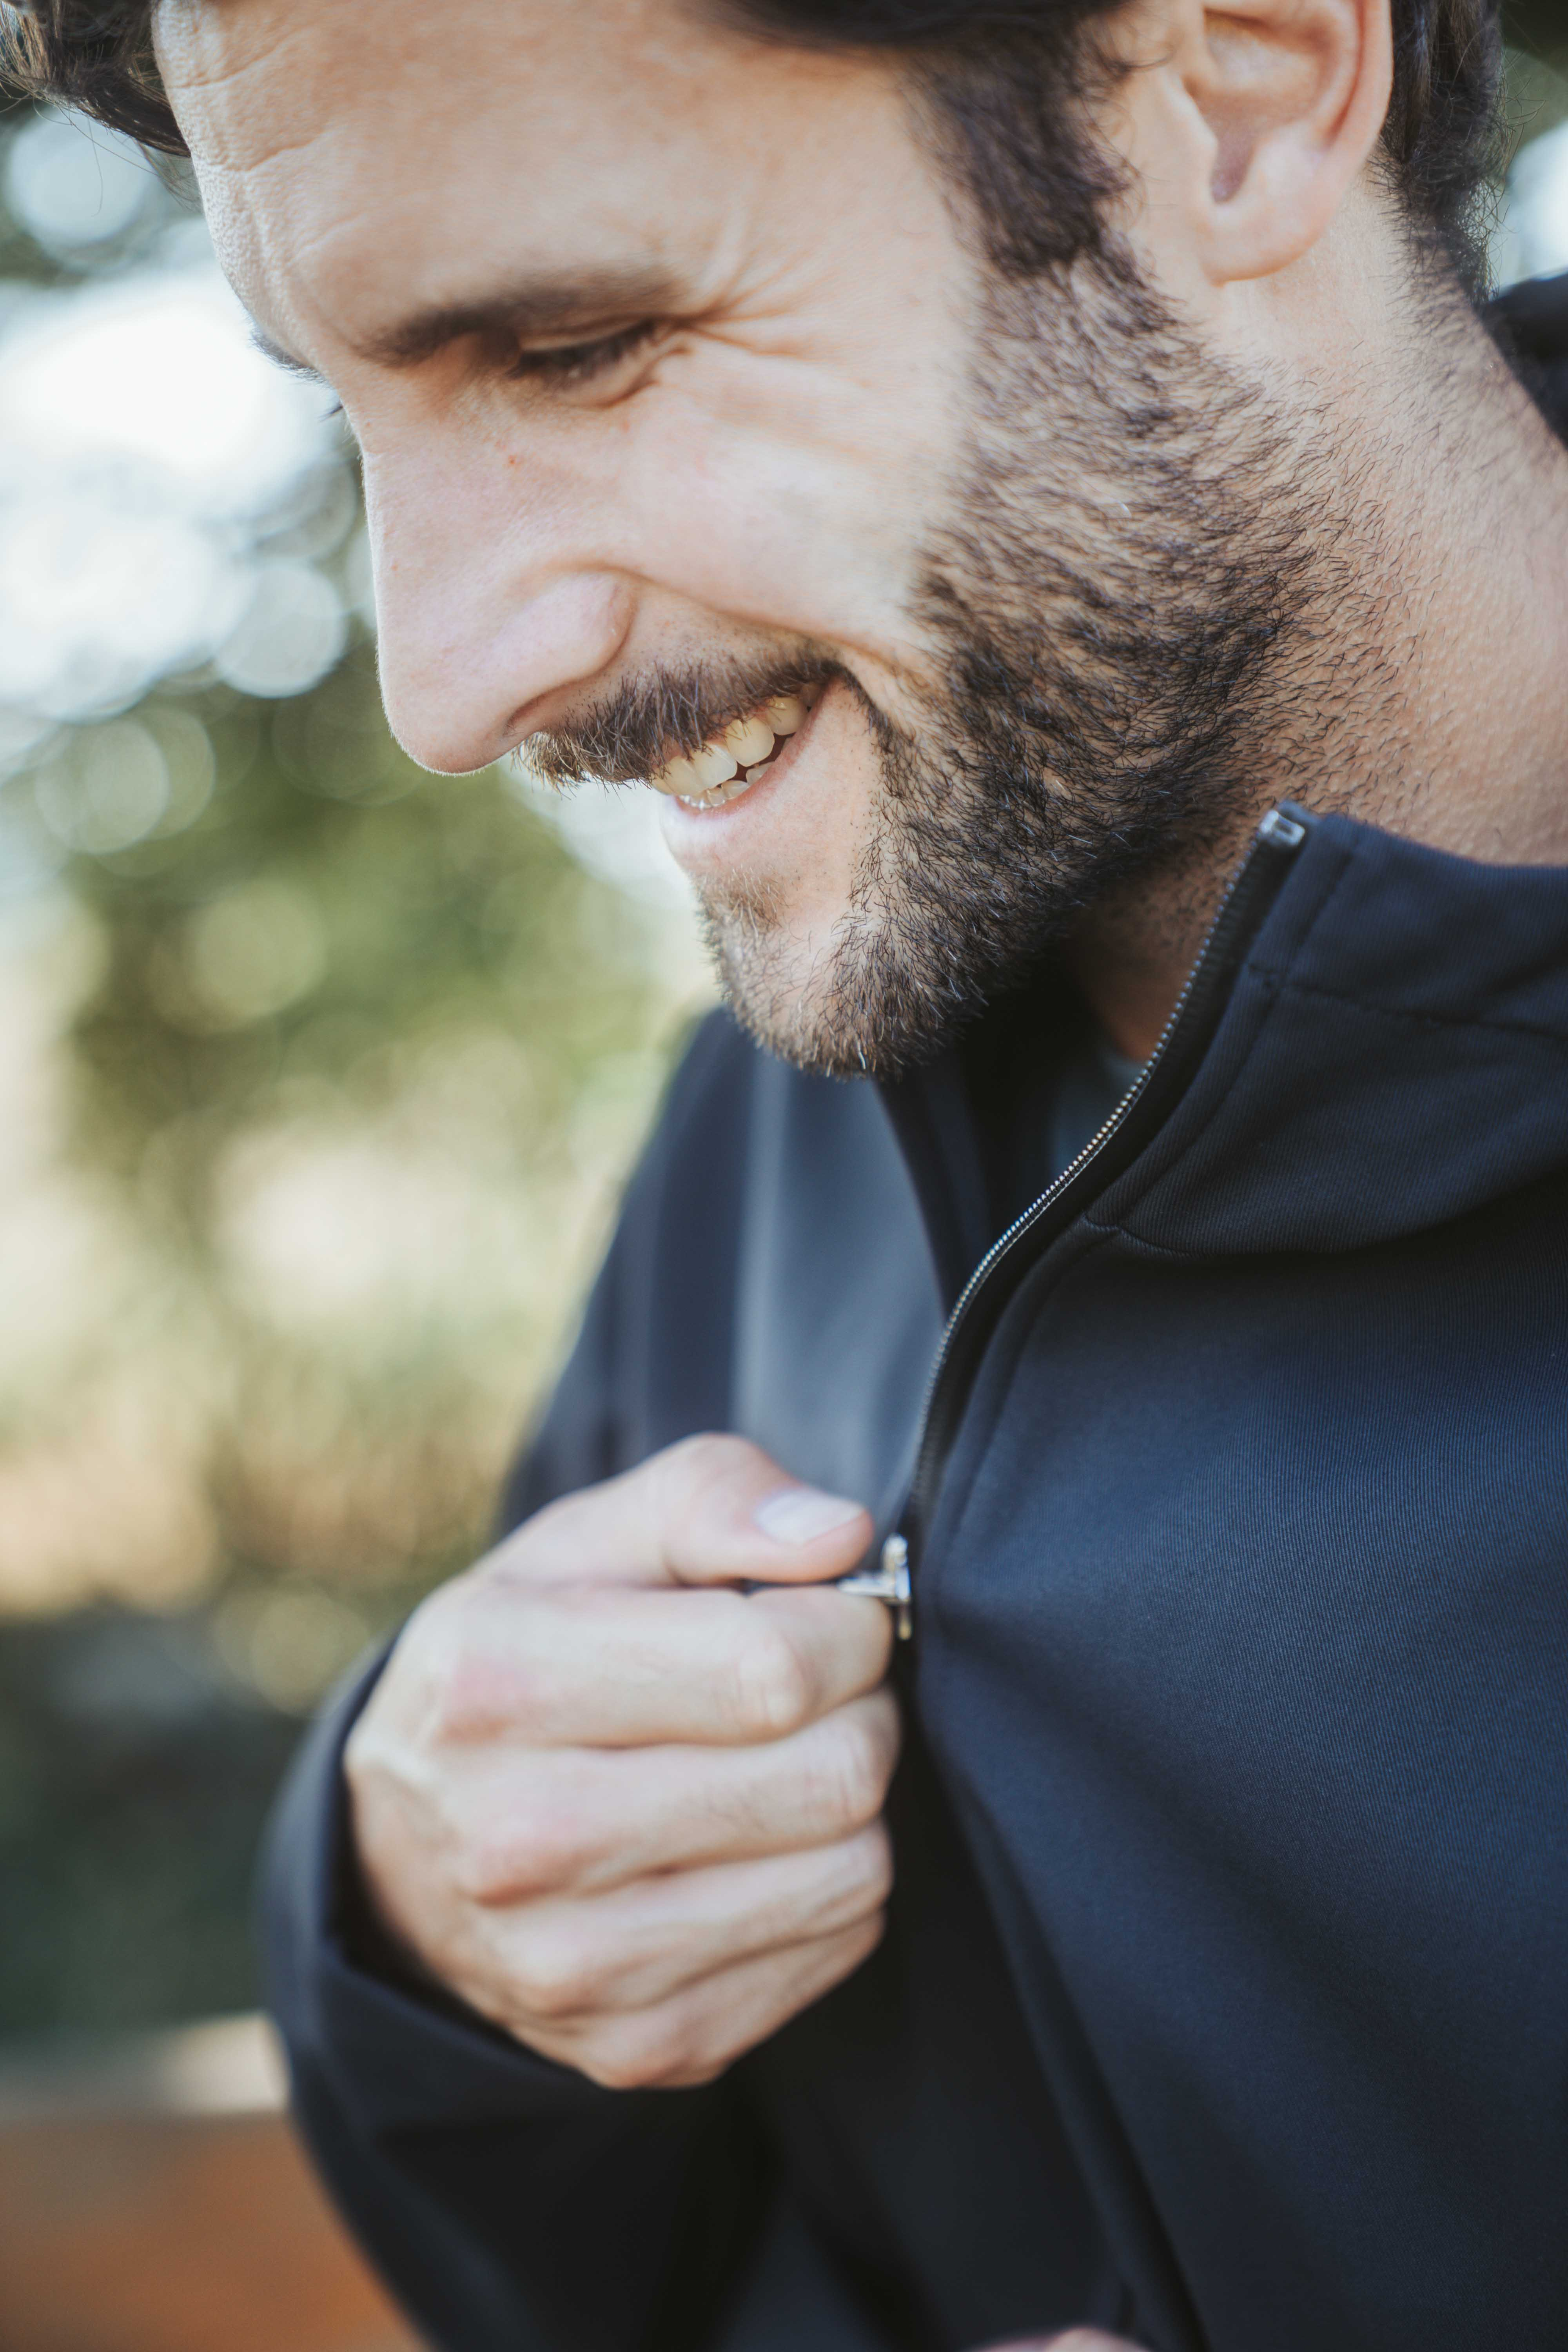 man with beard laughing while pulling up zipper of his jacket made by Elkline